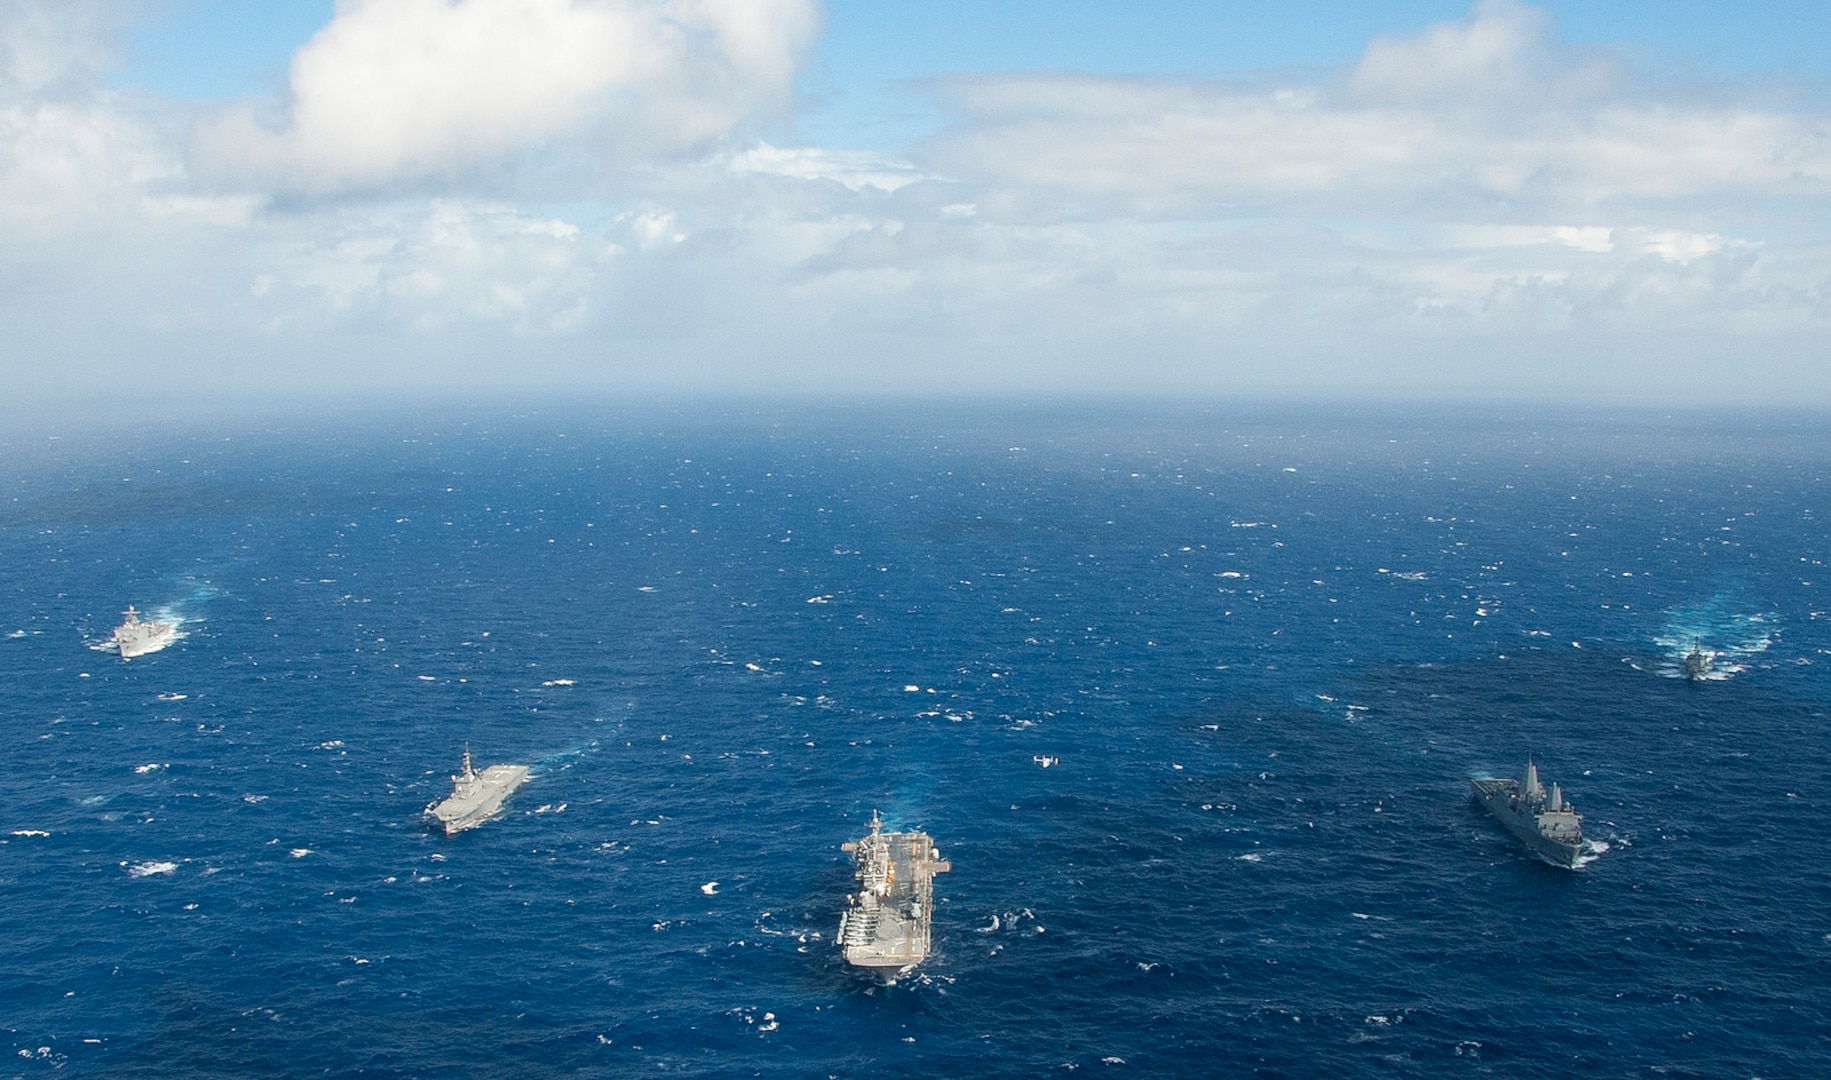 Wasp ARG Conducts PASSEX with JMSDF